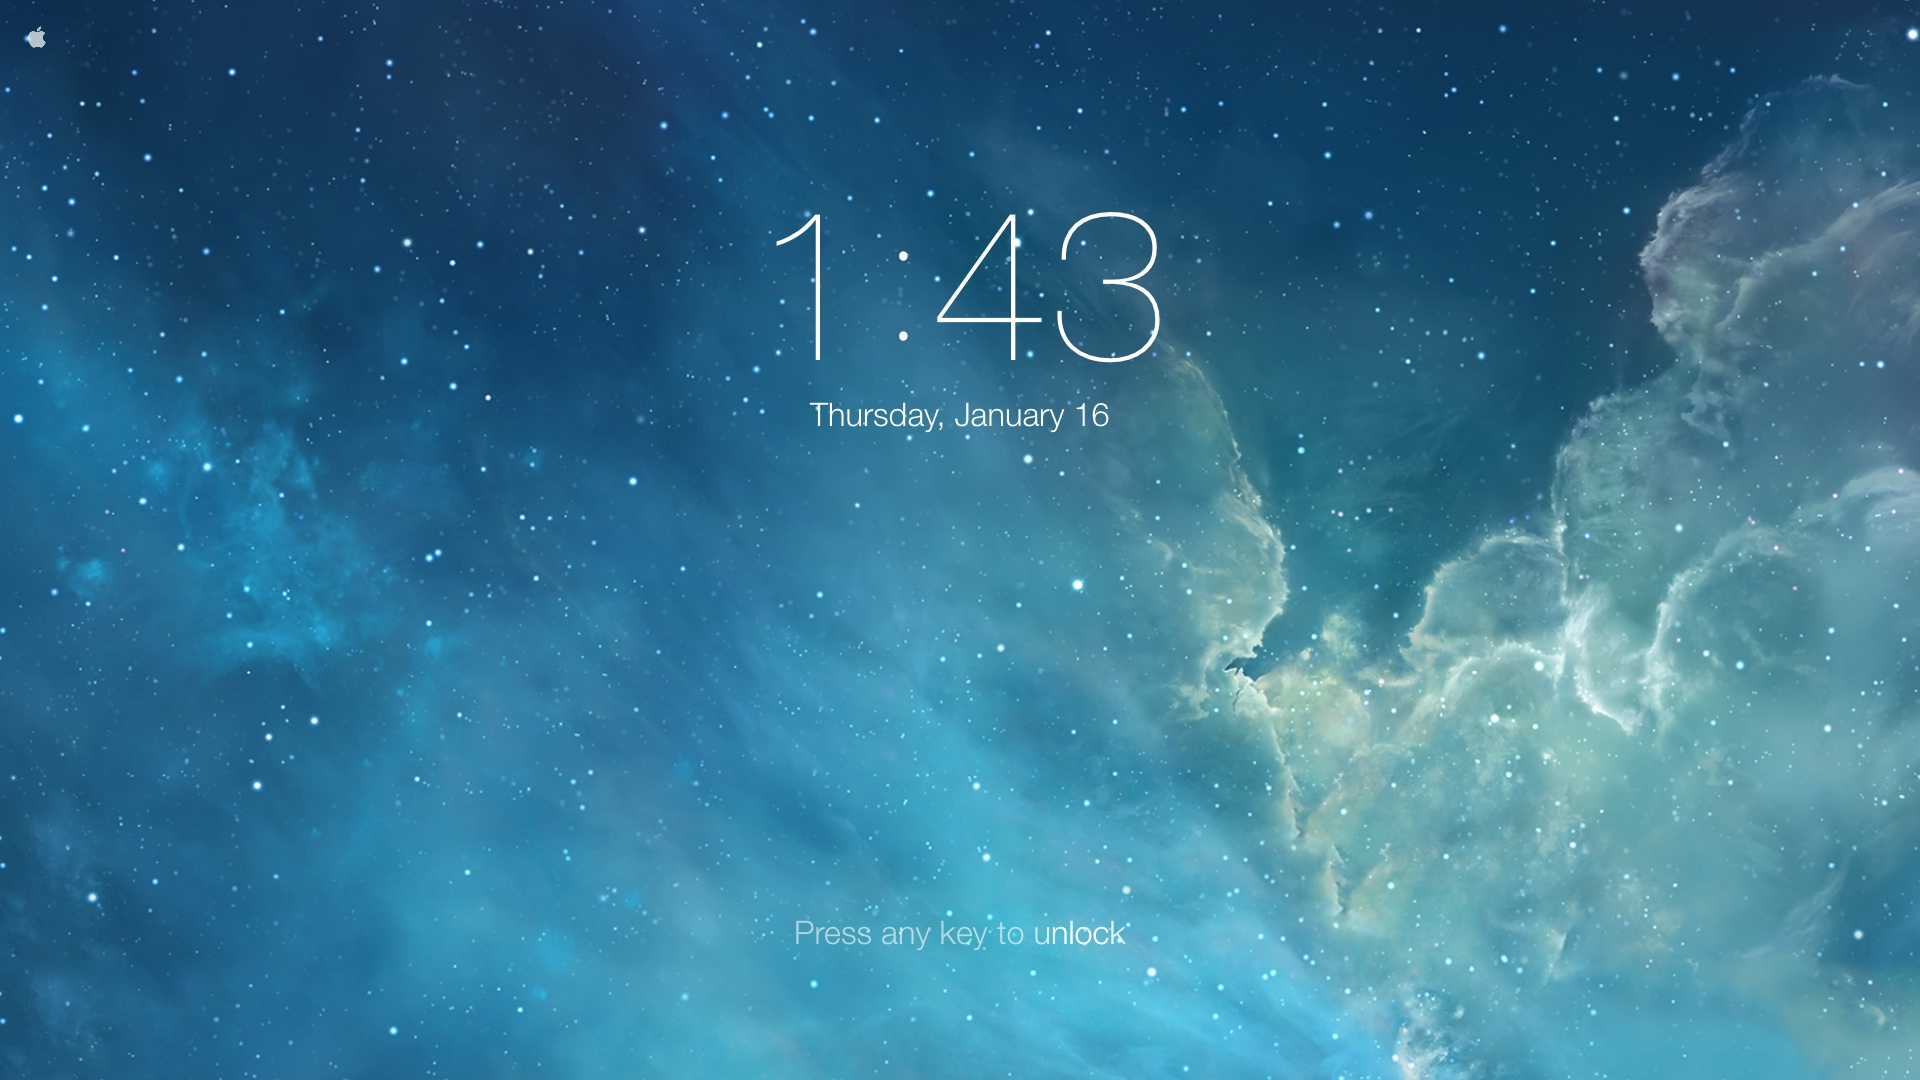 mac os x lion wallpaper for iphone